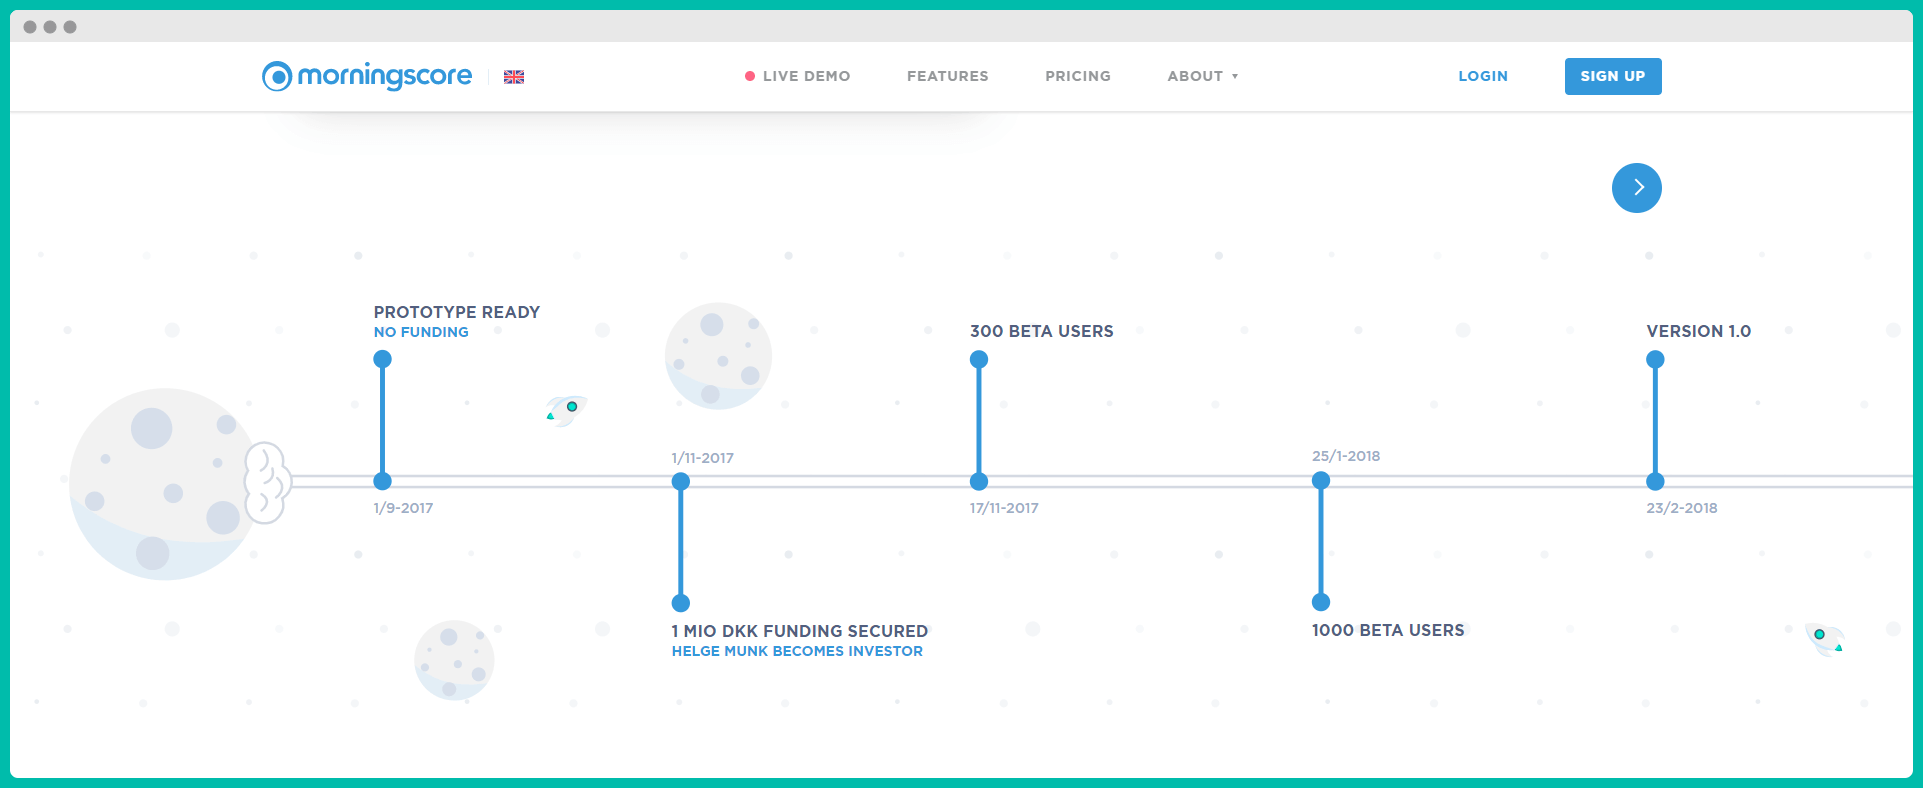 A company timeline from Morningscore's About page